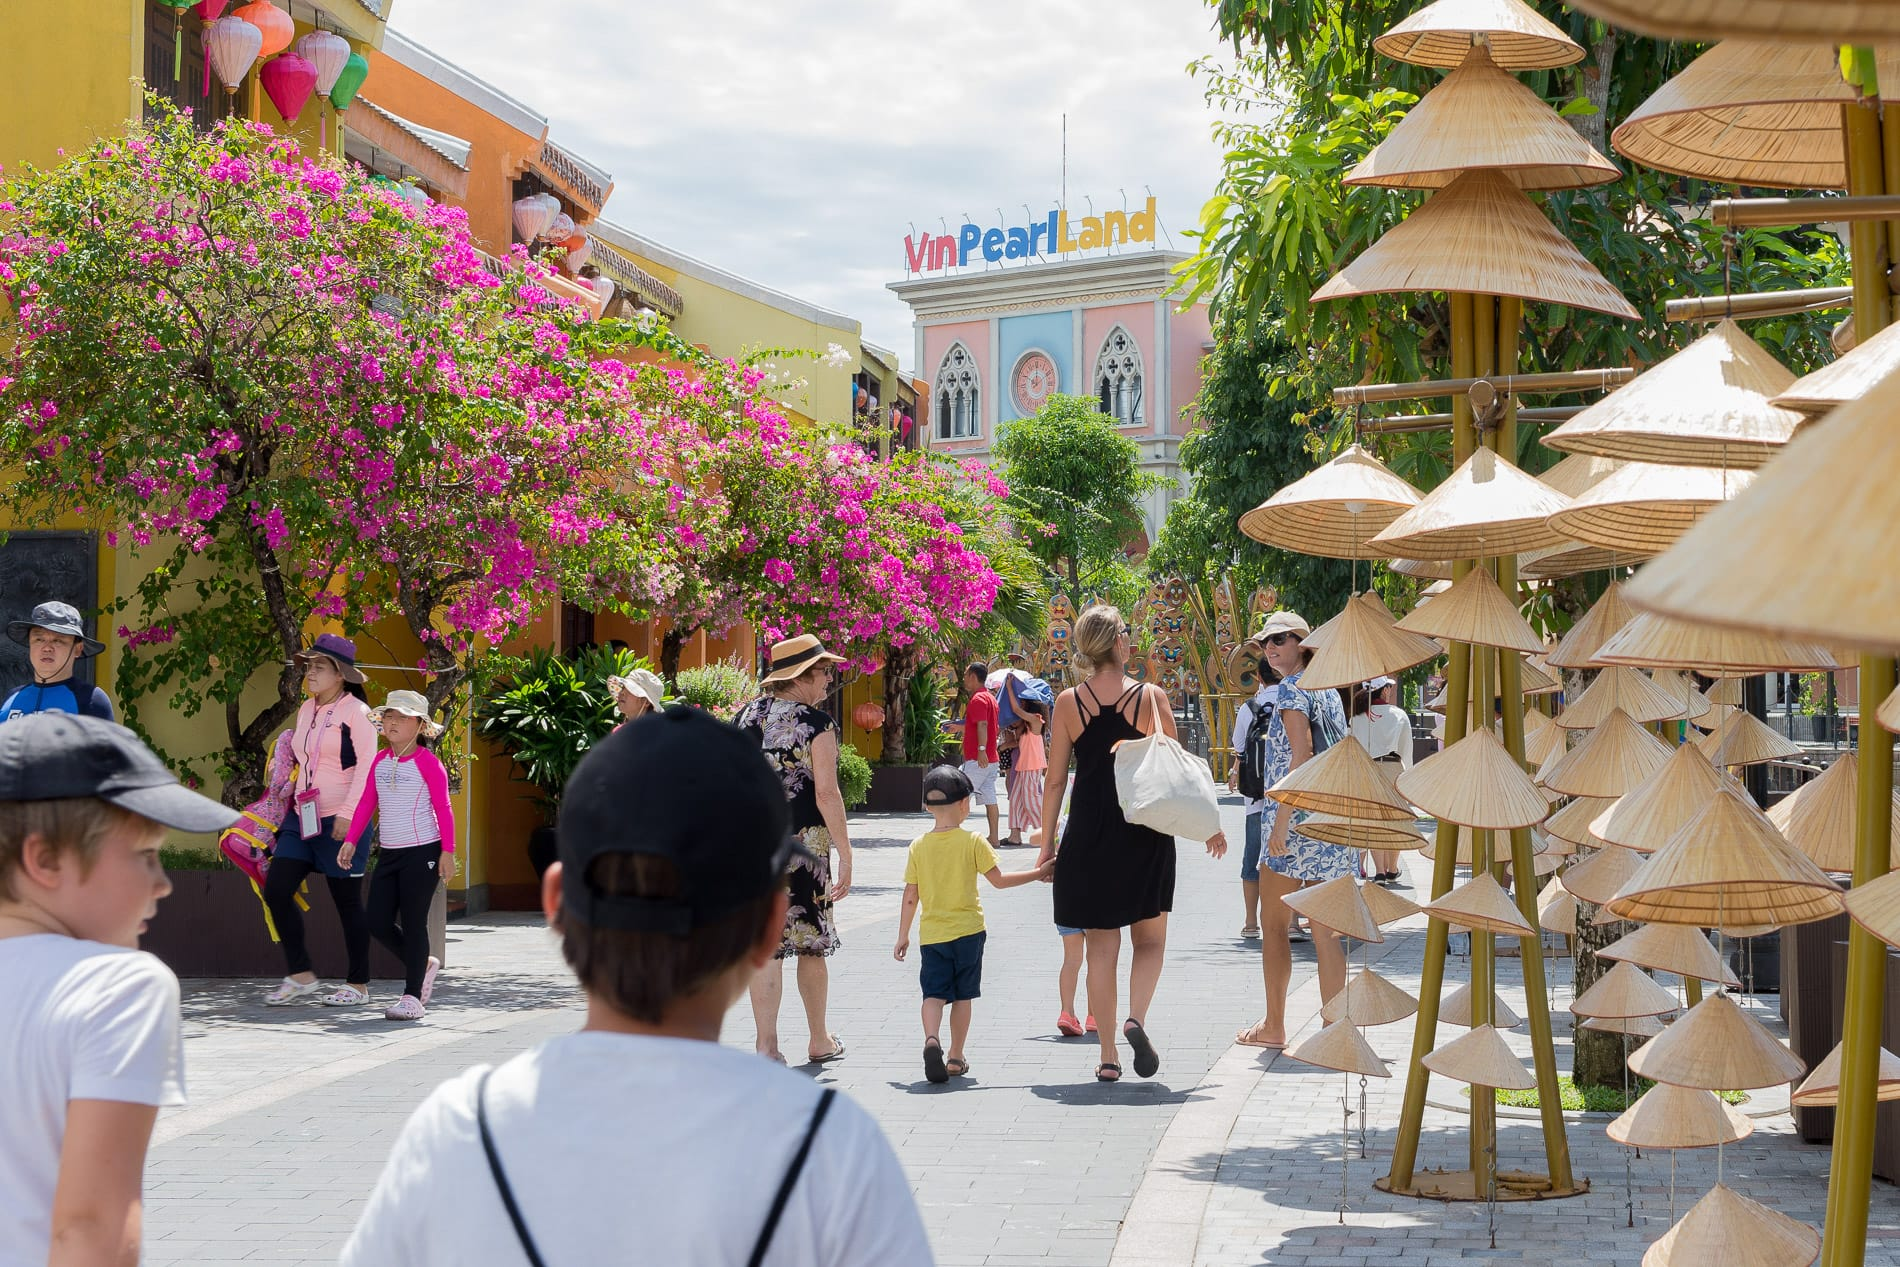 Holidaymakers at VinPearl Land